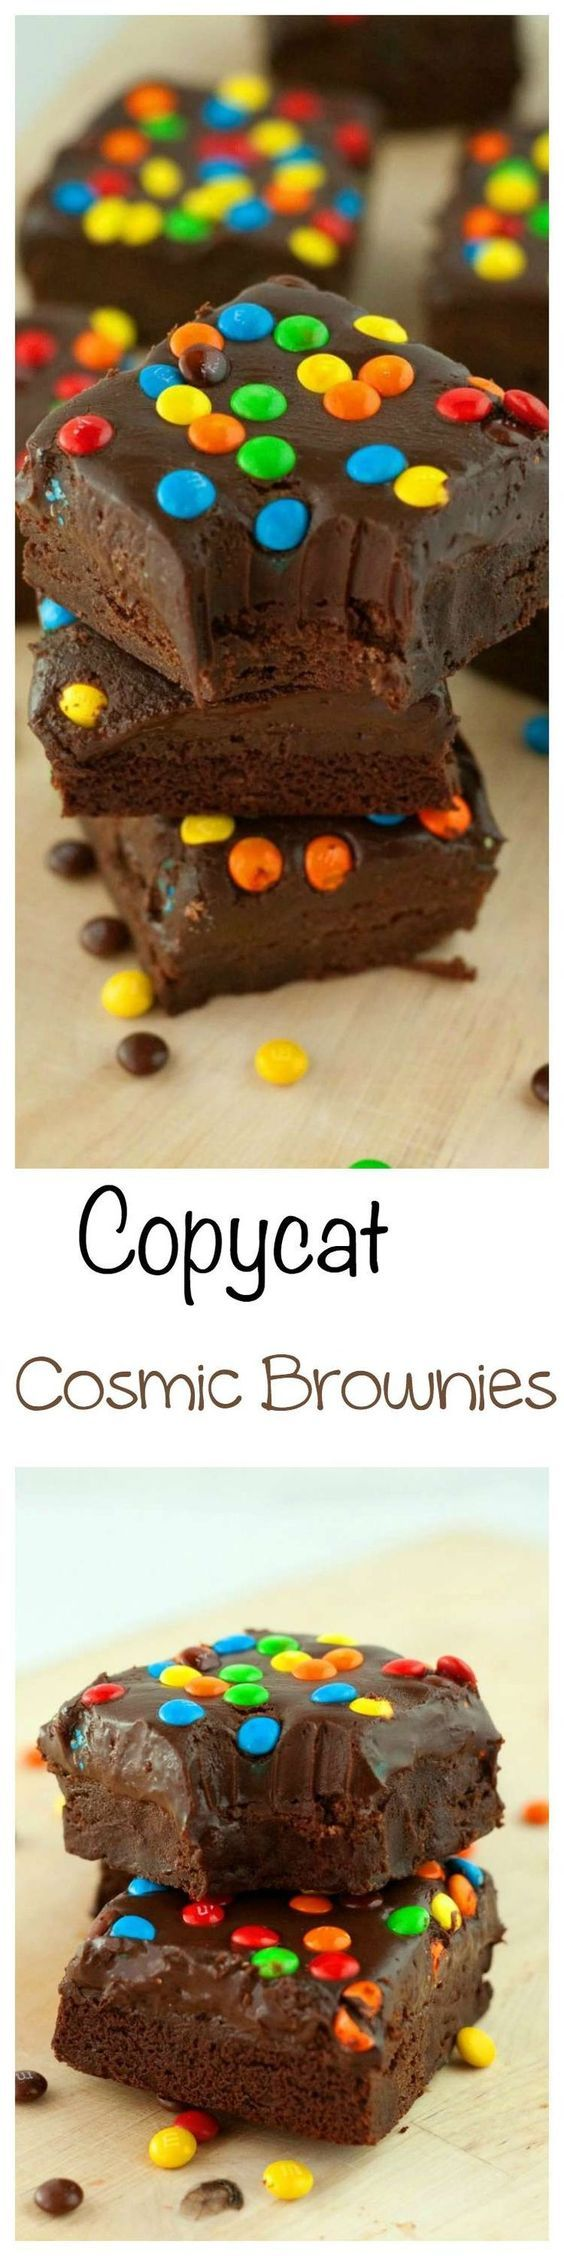 Copycat Cosmic Brownies: Thick, fudgy brownies smothered in silky smooth chocolate ganache, and topped with M&M candies. | Bloggers' Best Baking Recipes | Pint…